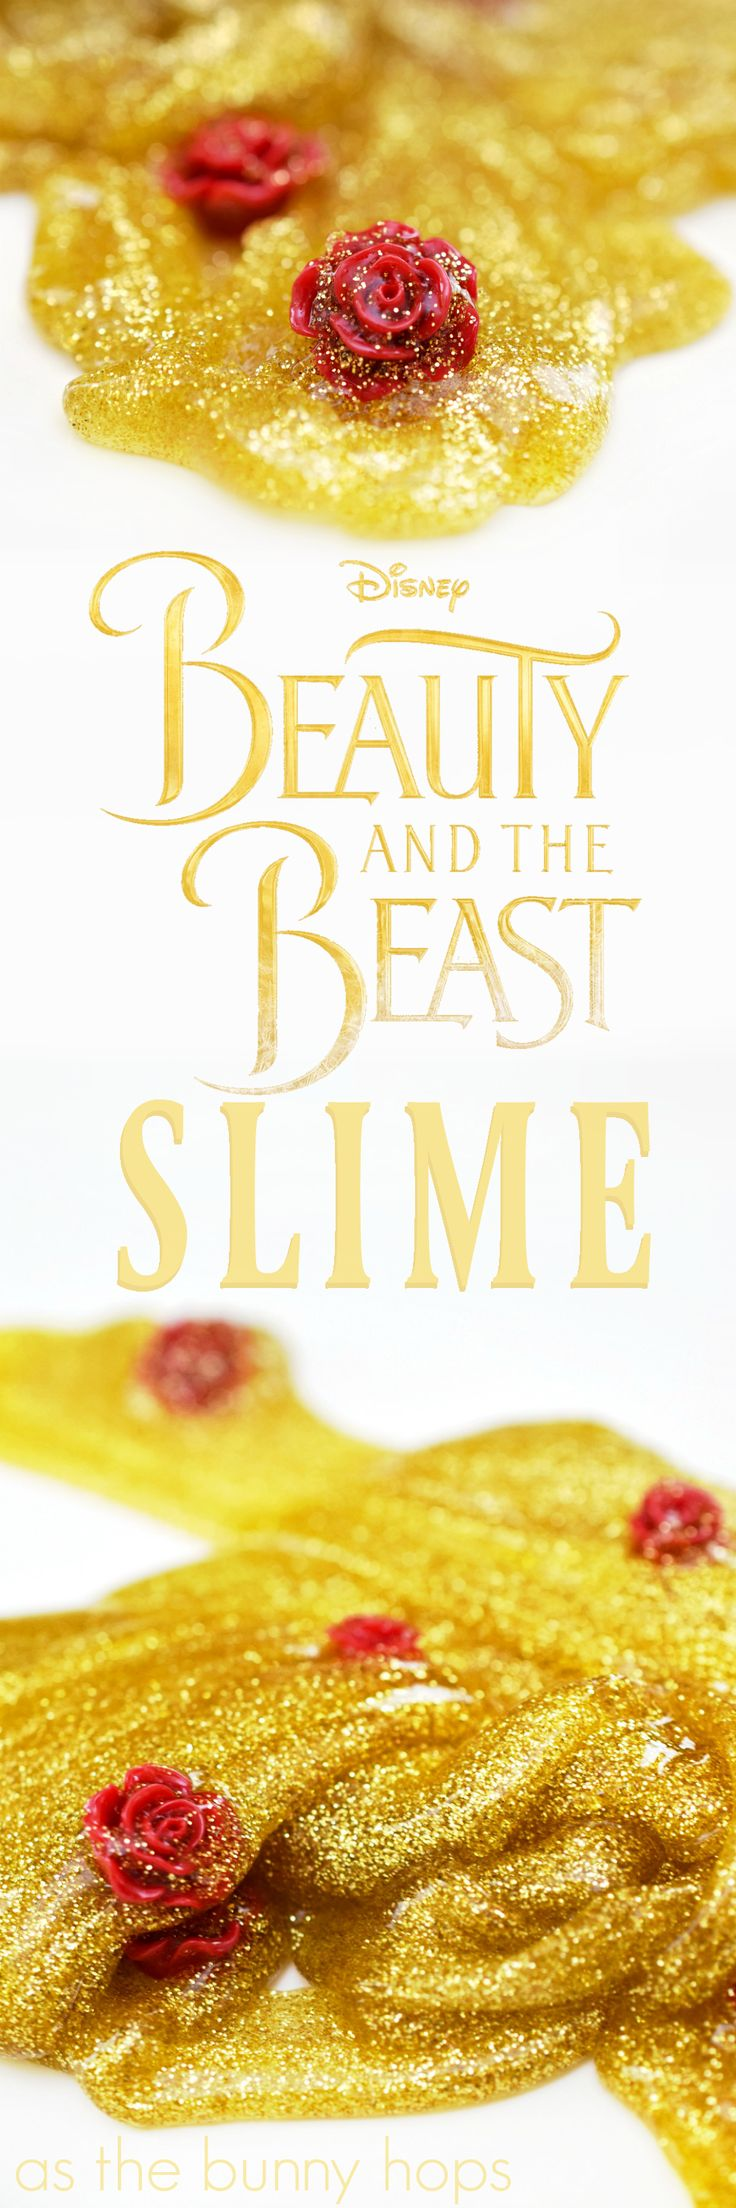 It's a tale as old as slime... Make easy and fun Beauty and the Beast Slime with a few simple ingredients!